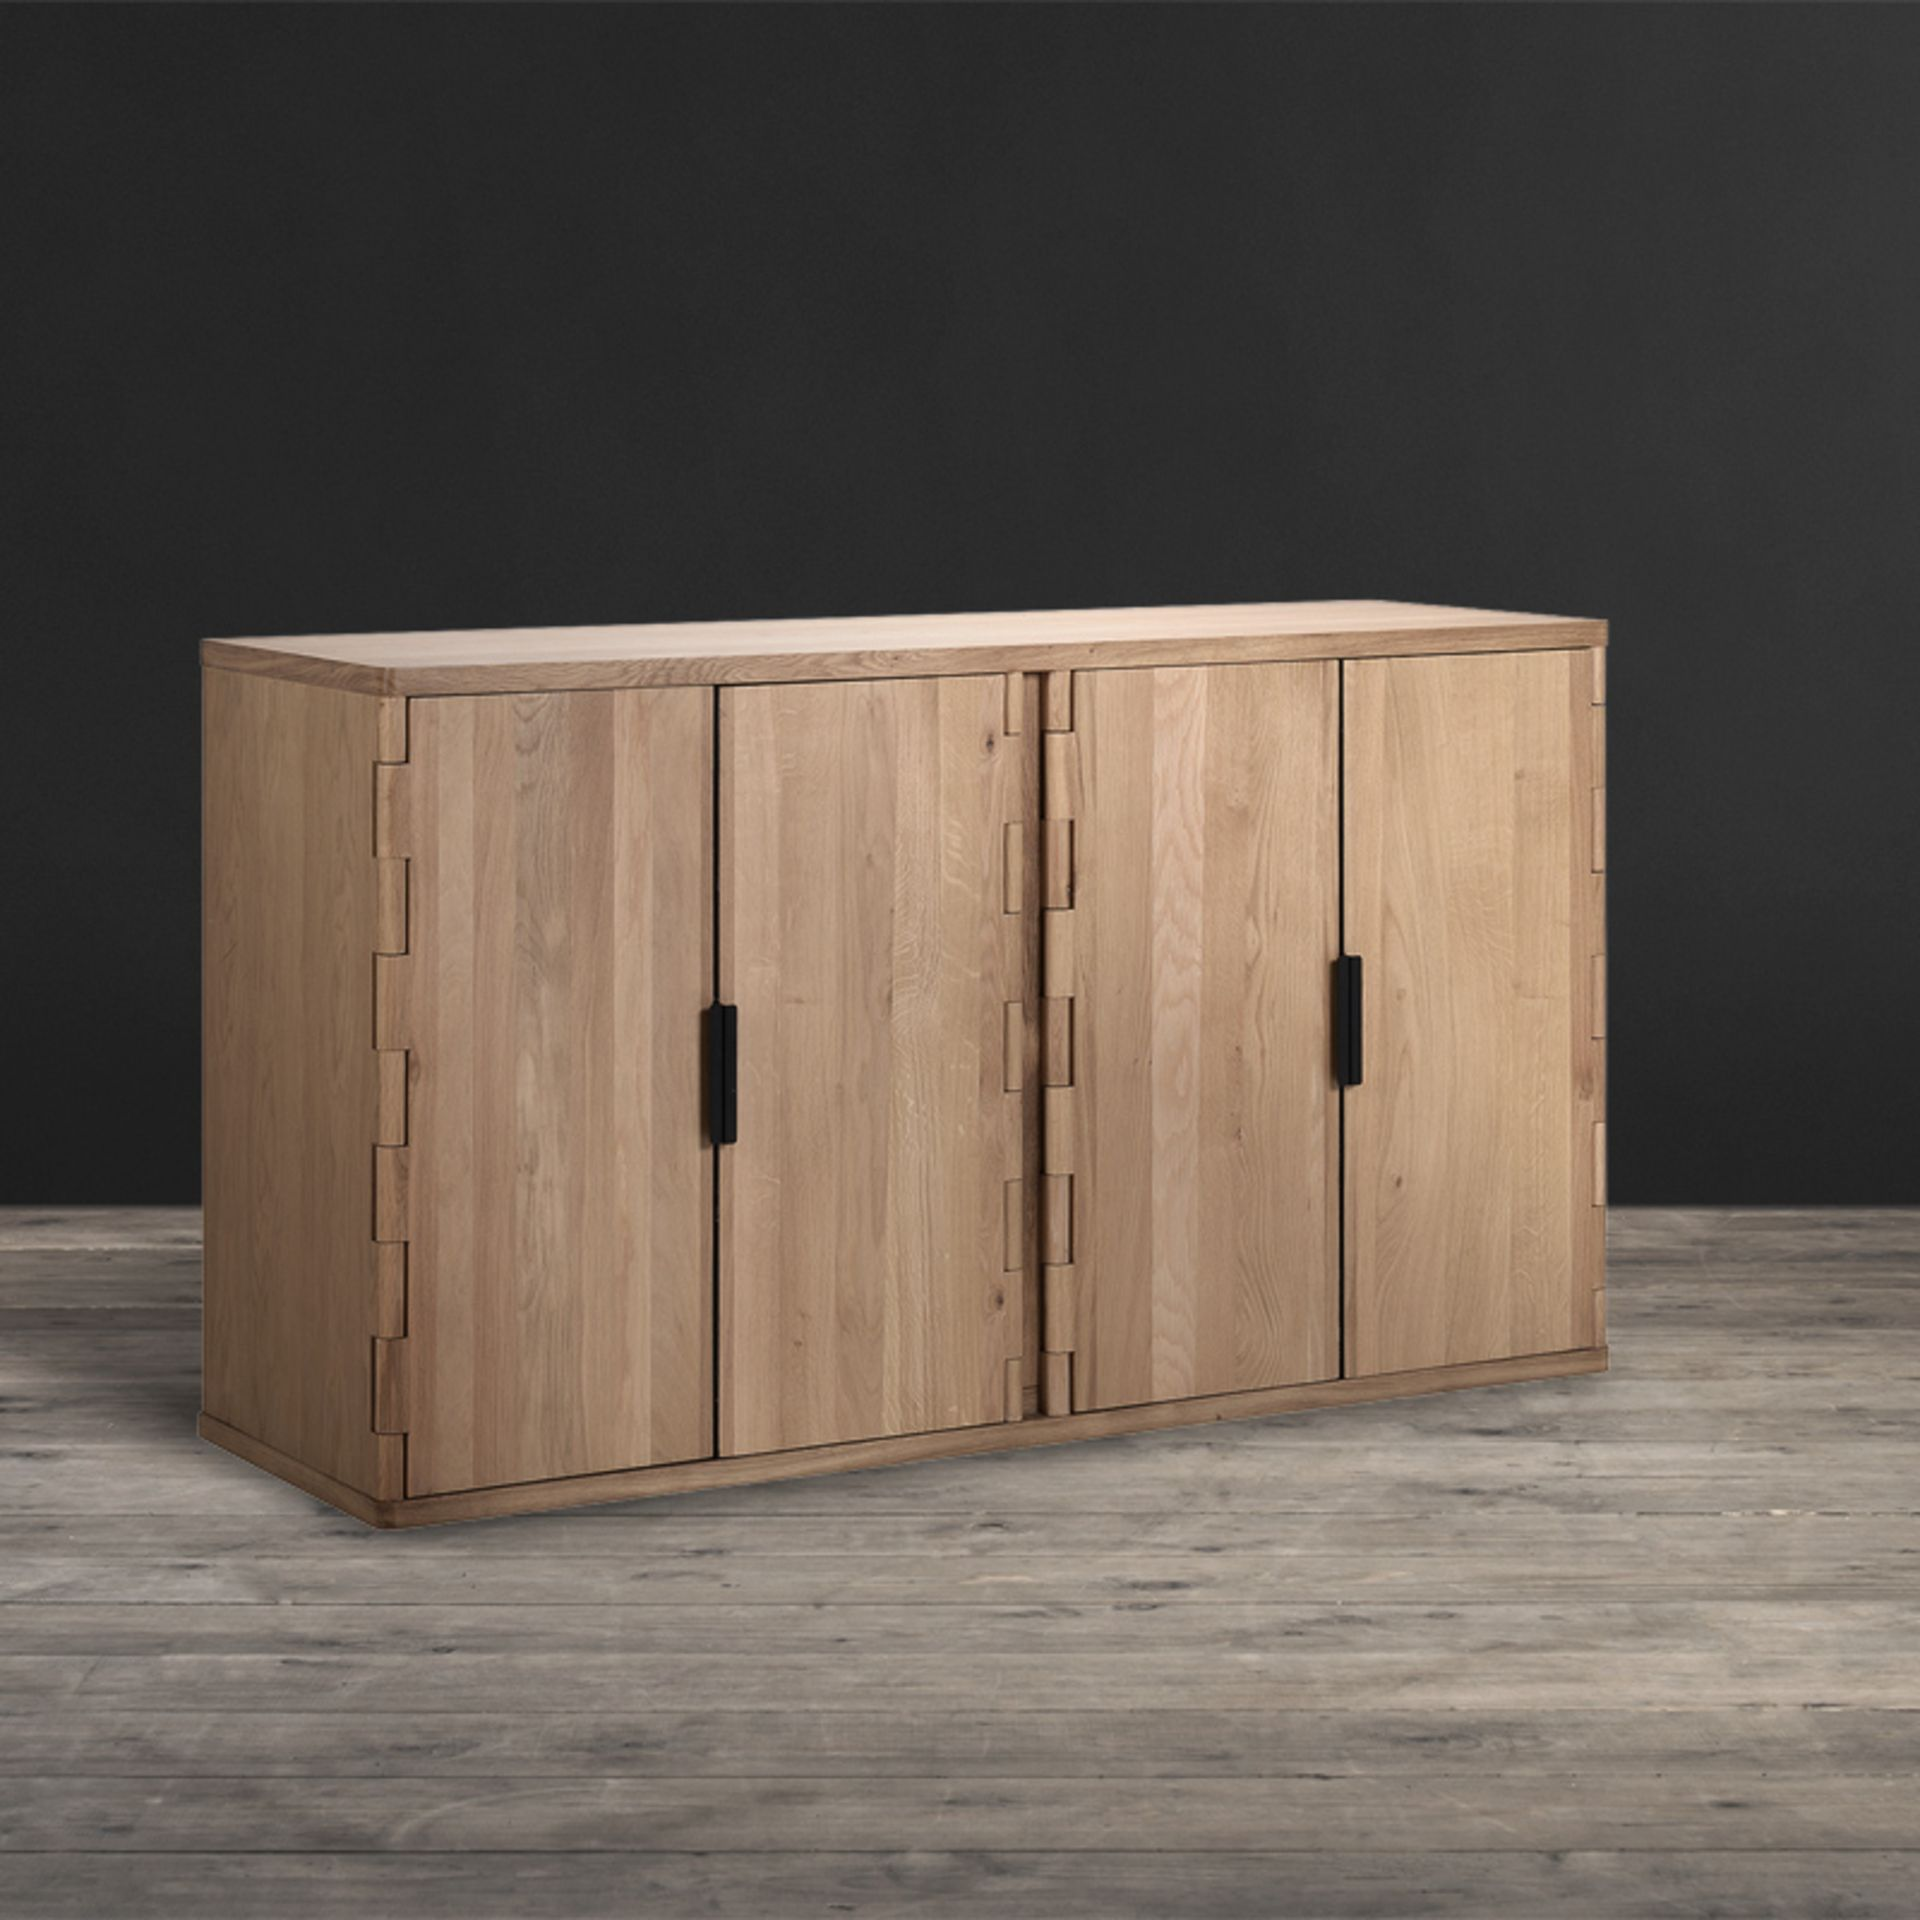 Lot 54 - Hinge Pure Oak Sideboard For Spaces When Less Is Even More, The Capacious Interior Of The Hinge